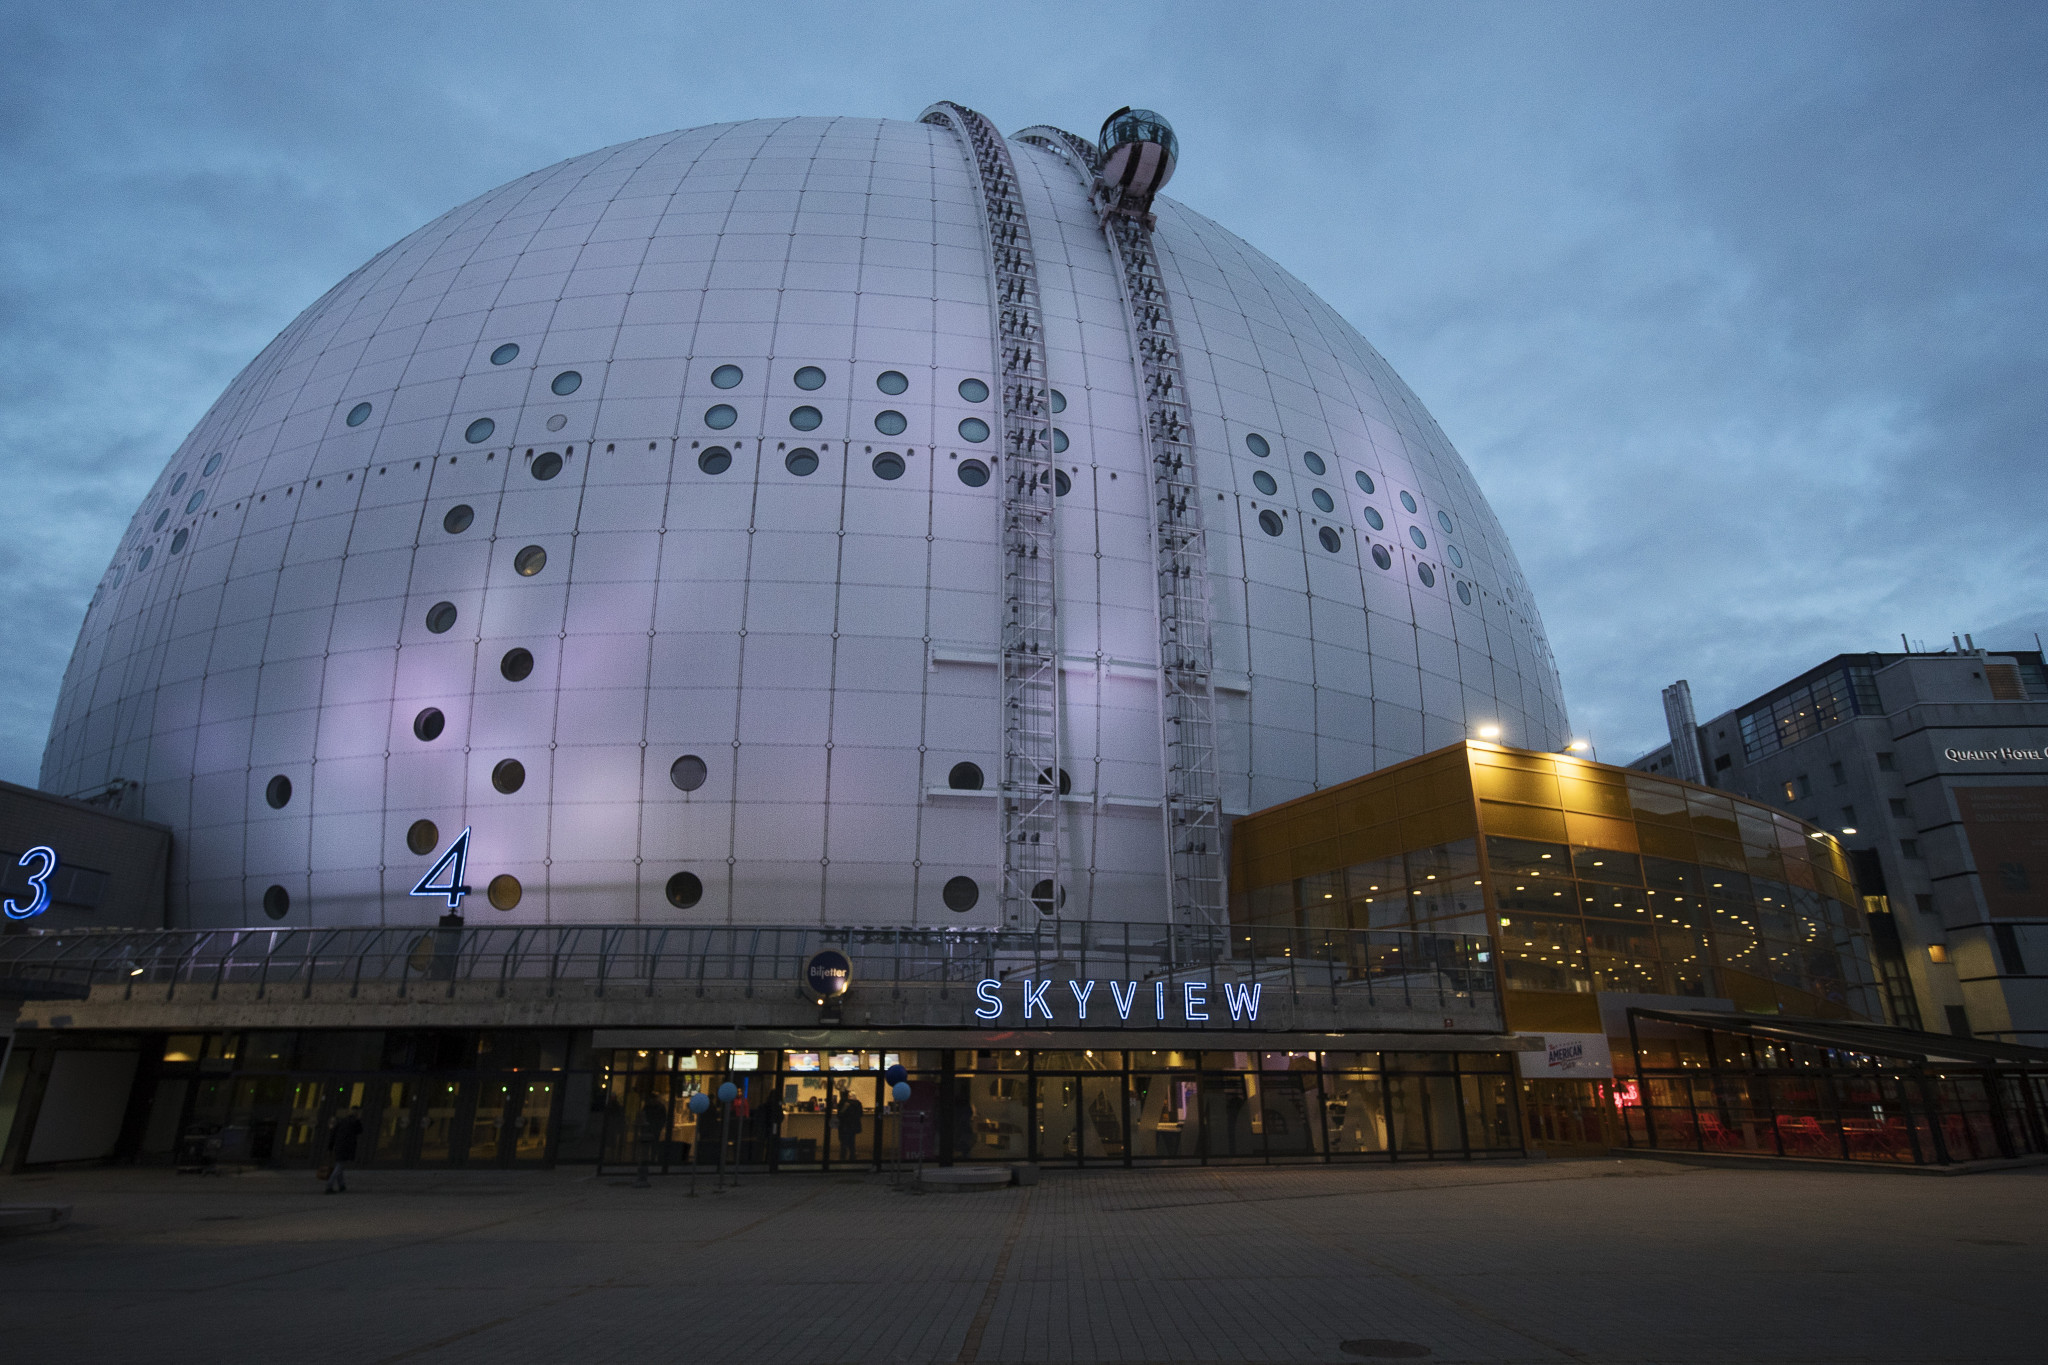 The Avicii Arena, opened in 1989, is the world's largest spherical building ©Getty Images